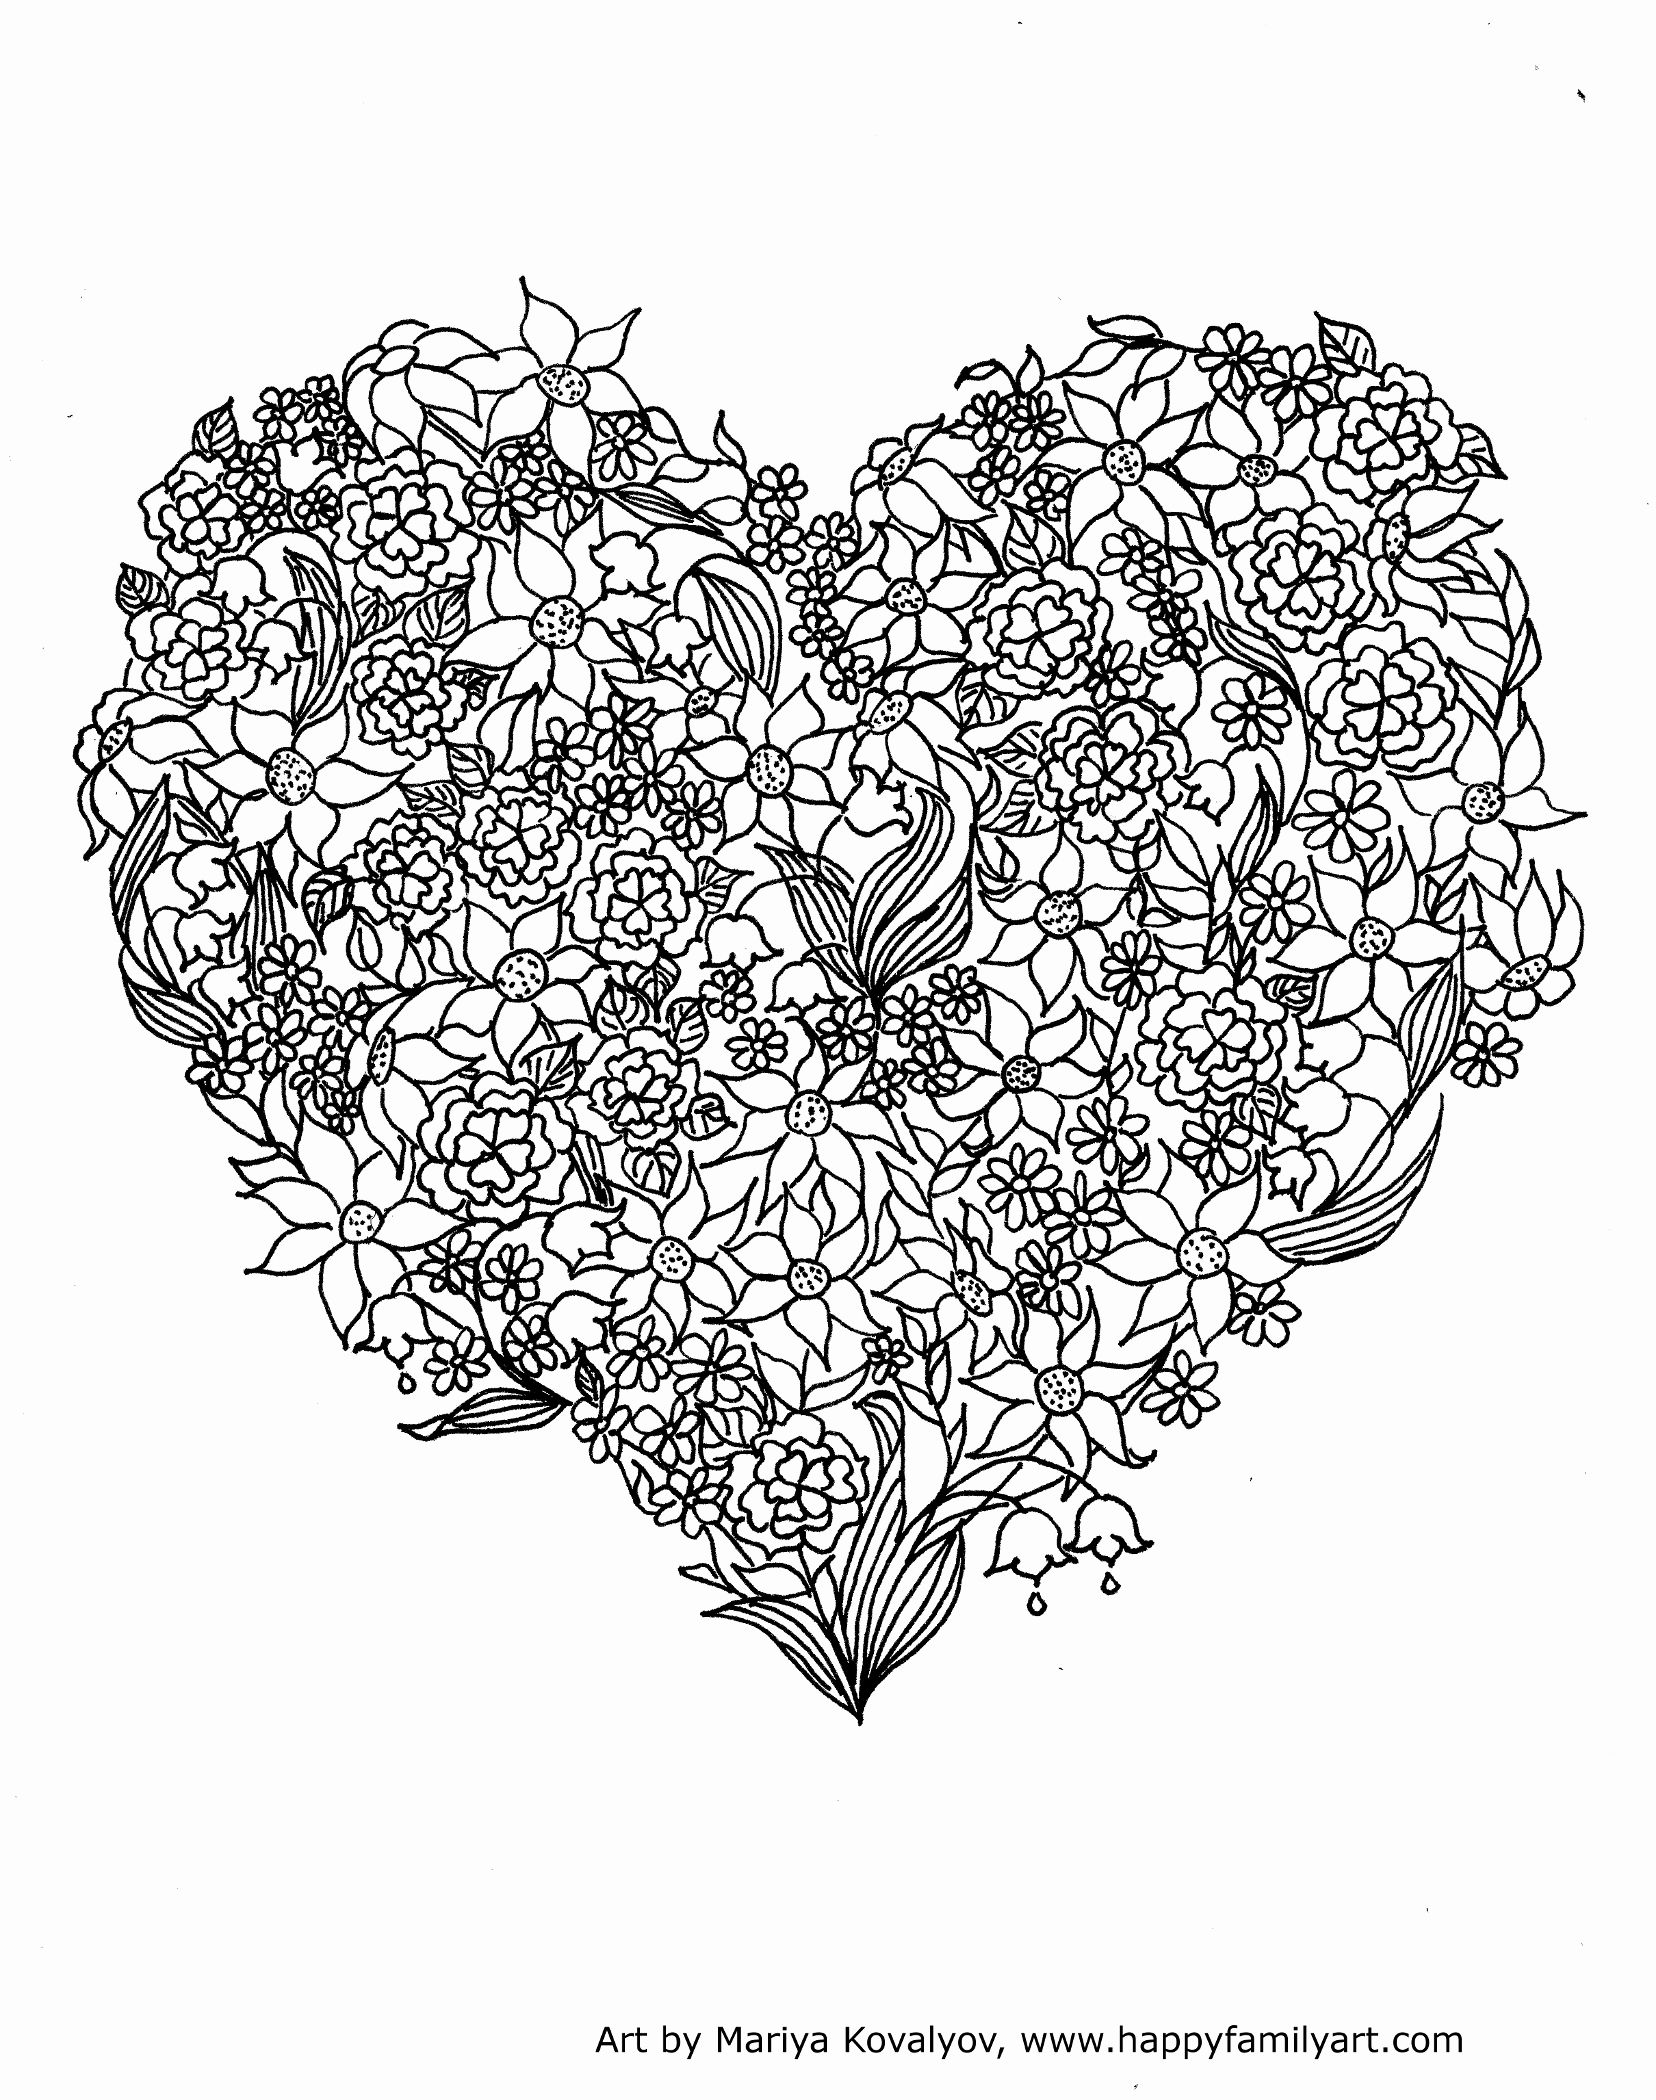 Coloring Pages for Hard Drawing for Kids Heart for Moms ...